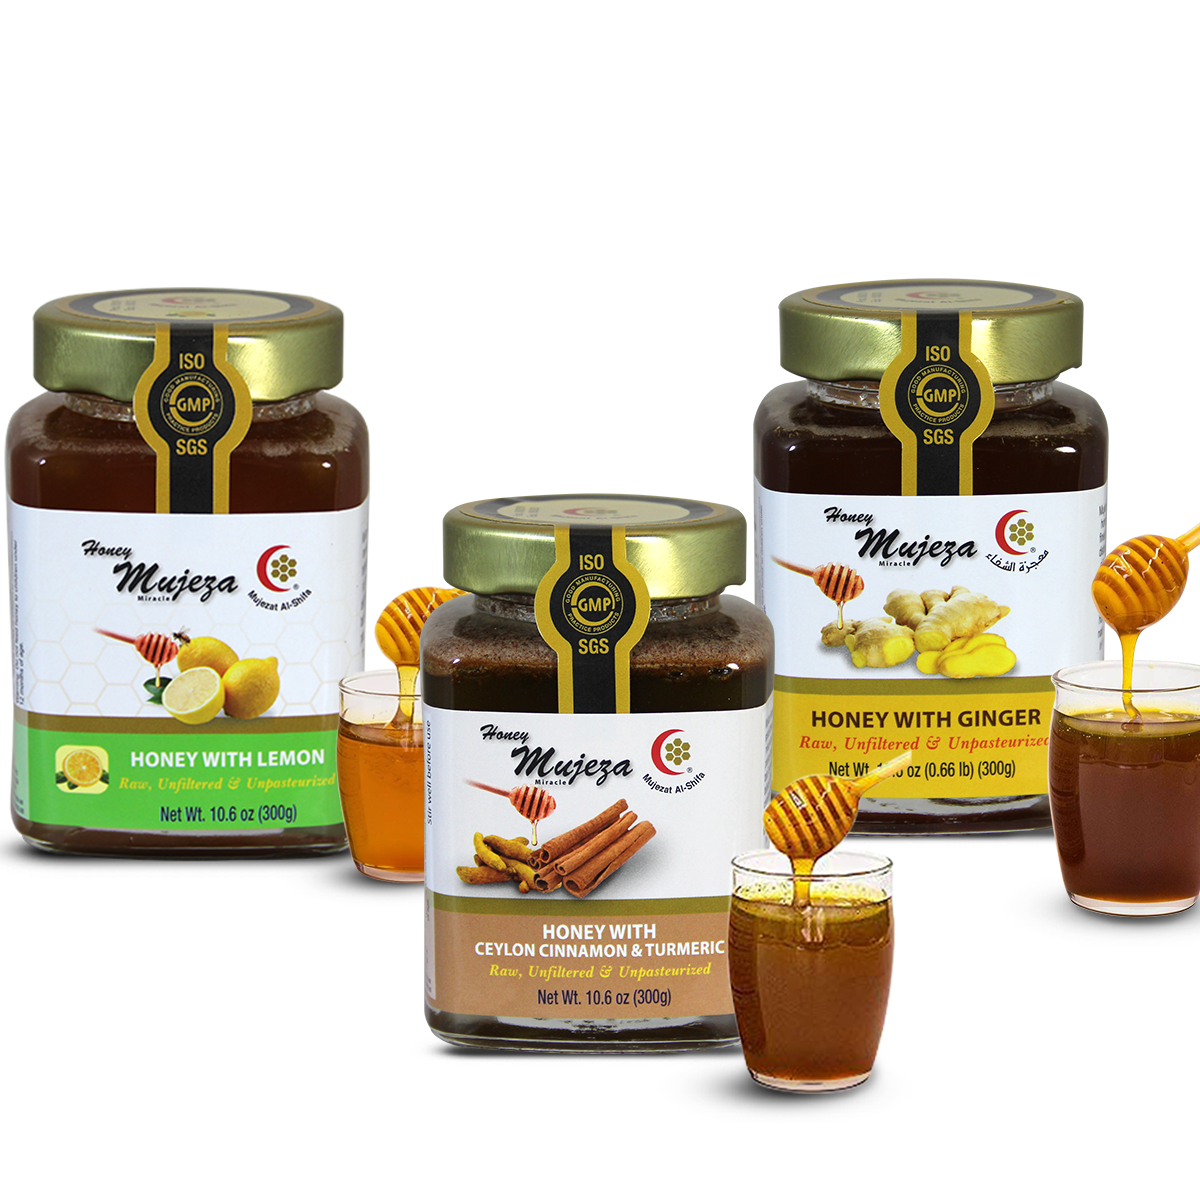 Pack of 3 Jars ( Cinnamon Turmeric Honey+ Ginger Honey + Lemon Honey) Each Jar 300gm/10.6 oz.